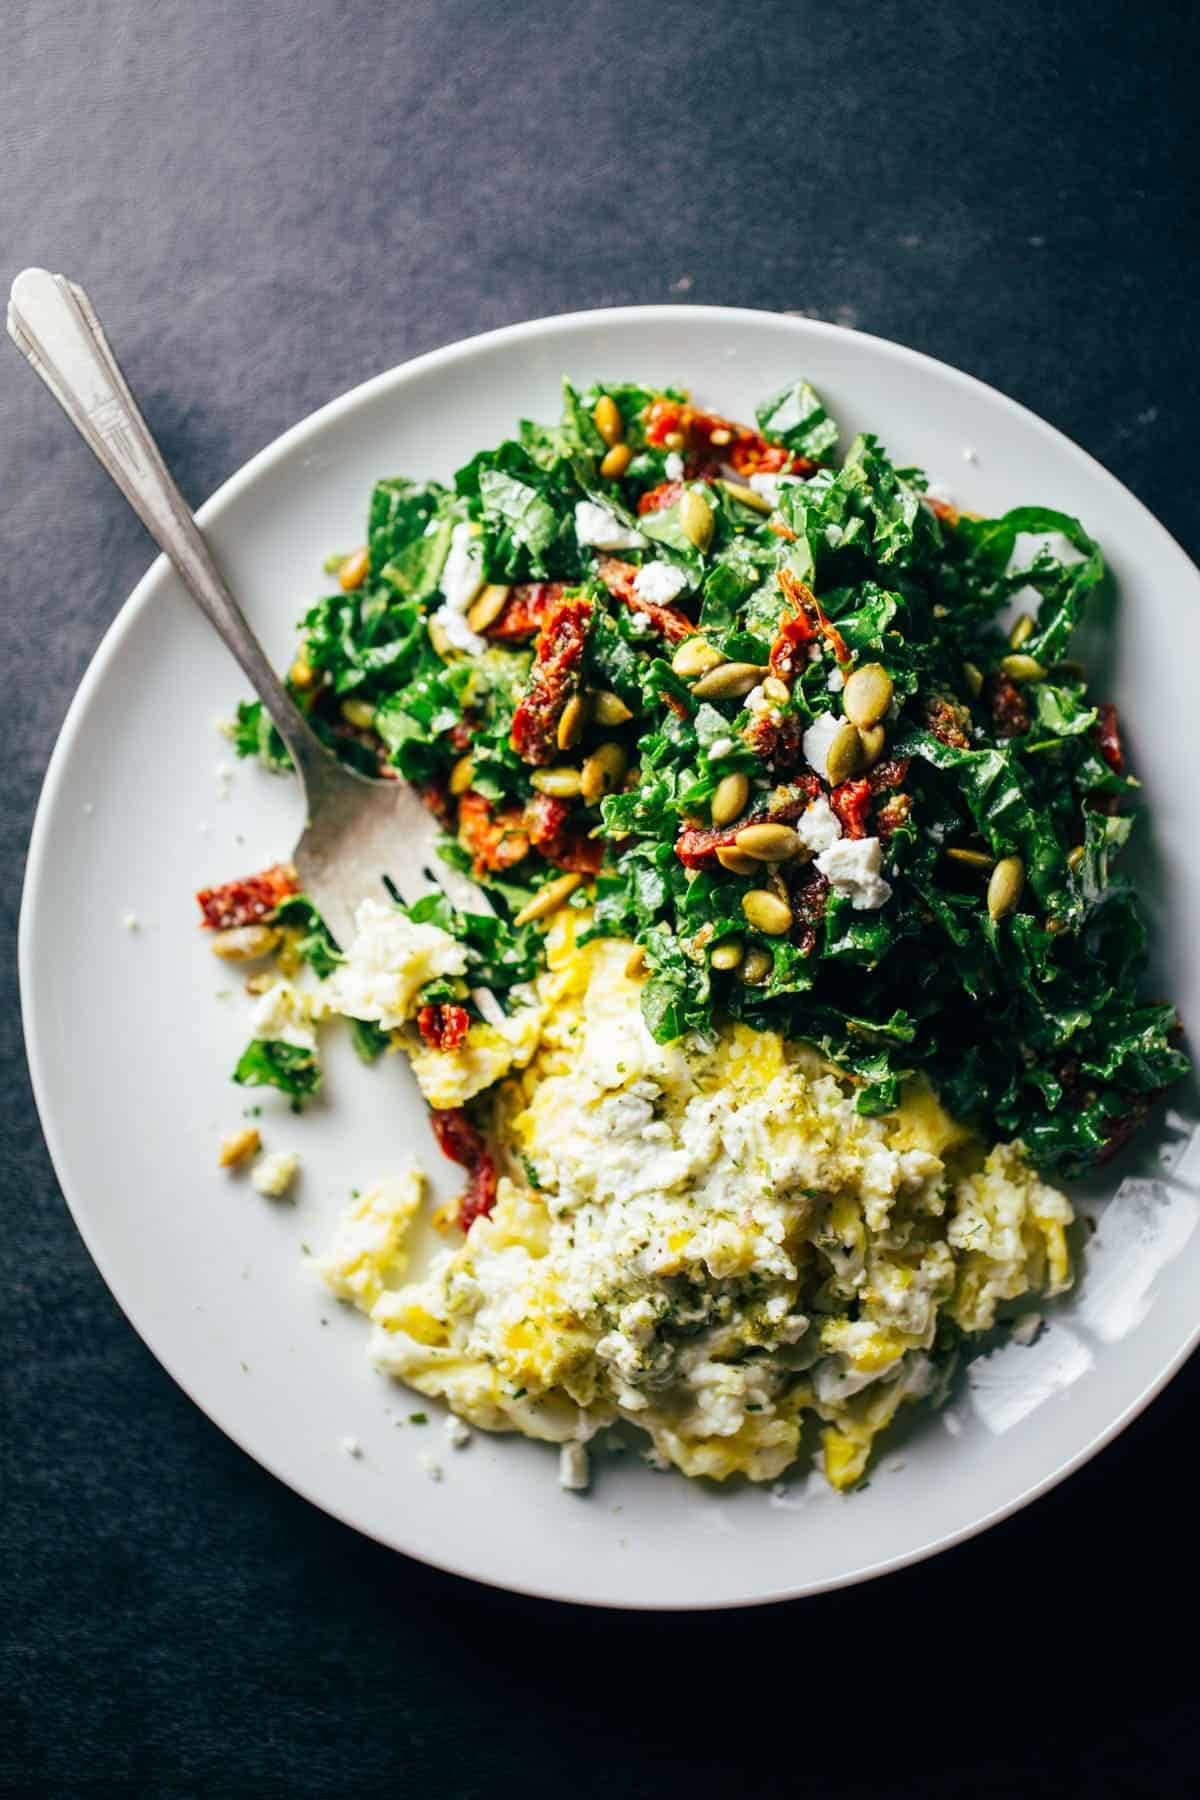 Goat Cheese Scrambled Eggs with Pesto Veggies on a white plate with a fork.